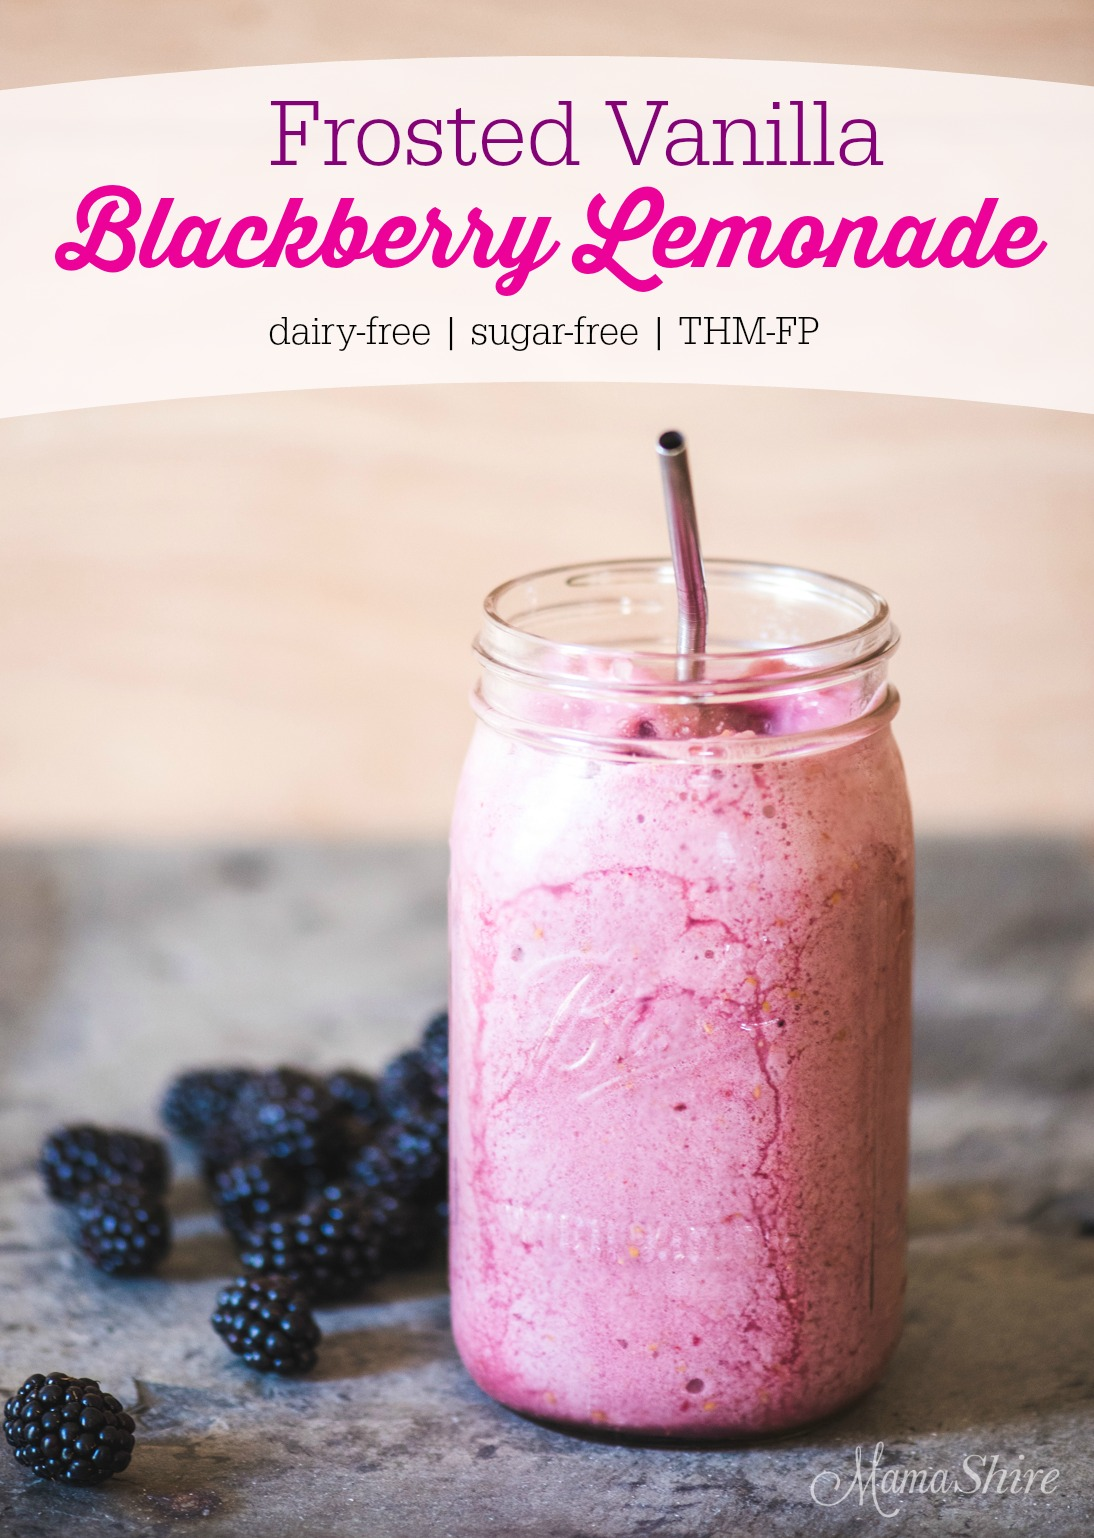 Frosted Vanilla Blackberry Lemonade - Dairy-Free Sugar-Free Shakes, Frosties, and Smoothies